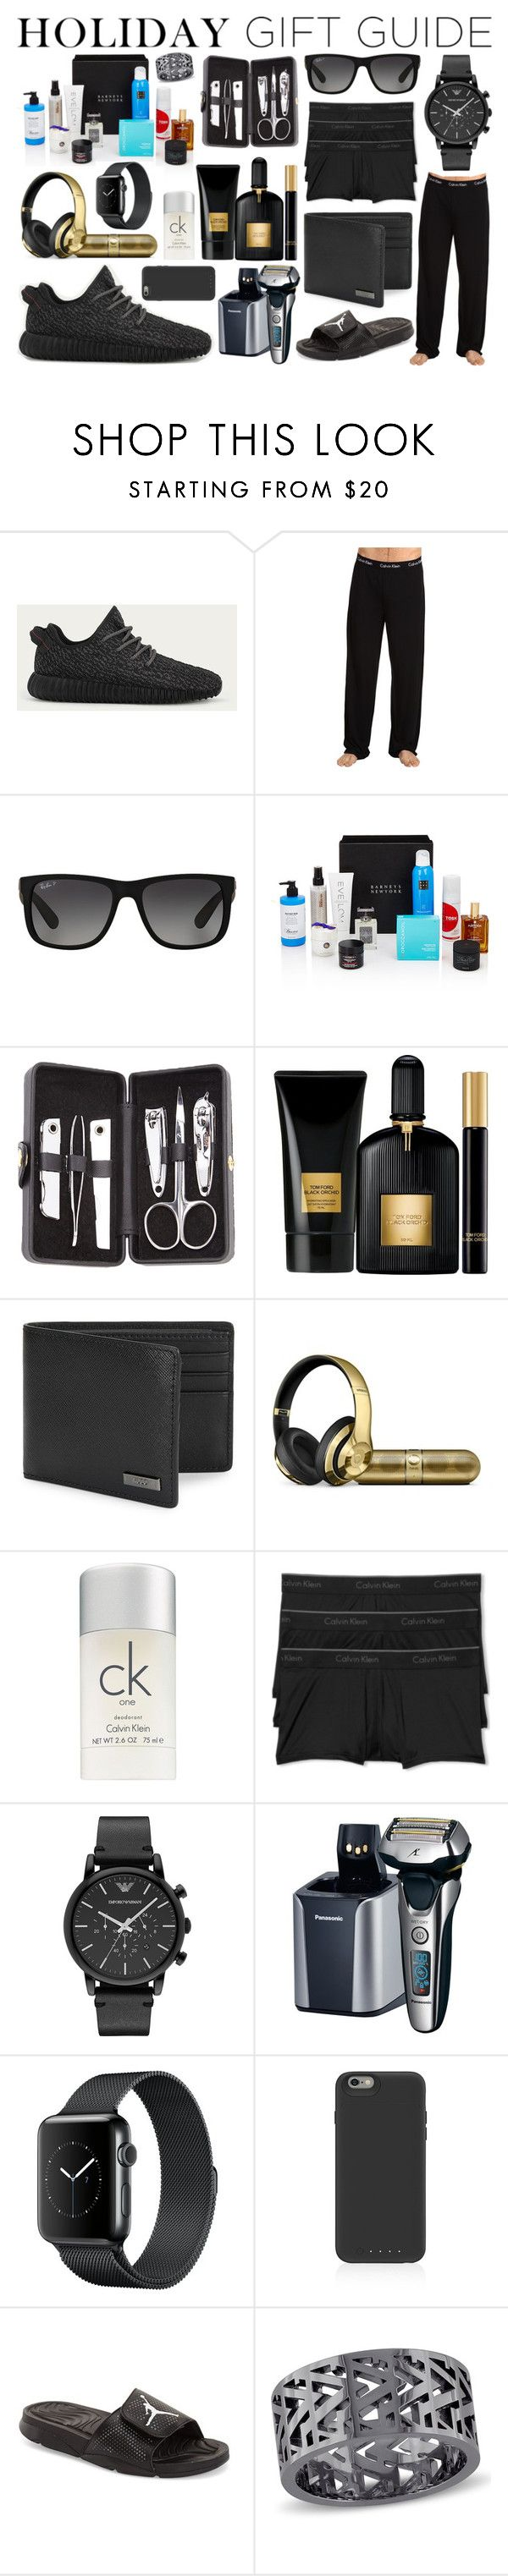 """""""Holiday Gift Guide For Men"""" by jessicagrewal ❤ liked on Polyvore featuring adidas, Calvin Klein Underwear, Ray-Ban, Beauty Box, Royce Leather, Tom Ford, HUGO, Calvin Klein, Emporio Armani and Panasonic"""